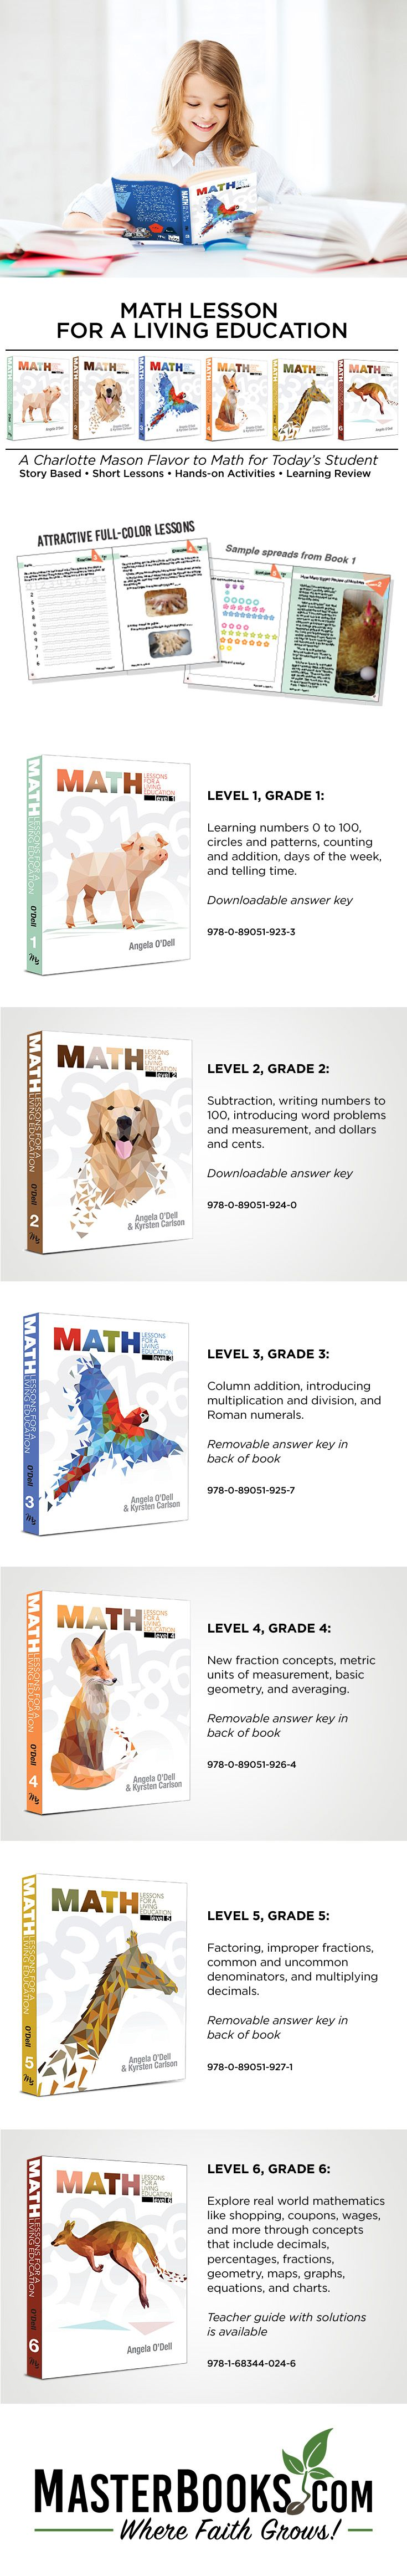 Math Lessons for Living Education Level 1-6 available at Master Books. The Math Lessons for a Living Education series helps take math from the pages of a book and place it in the context of real-life situations so that students can see the practical application (the why's) of these concepts (the how's). Math concepts are best learned in the context of living, in the midst of discovery, and through the worldview glasses that focus on the bigger picture.